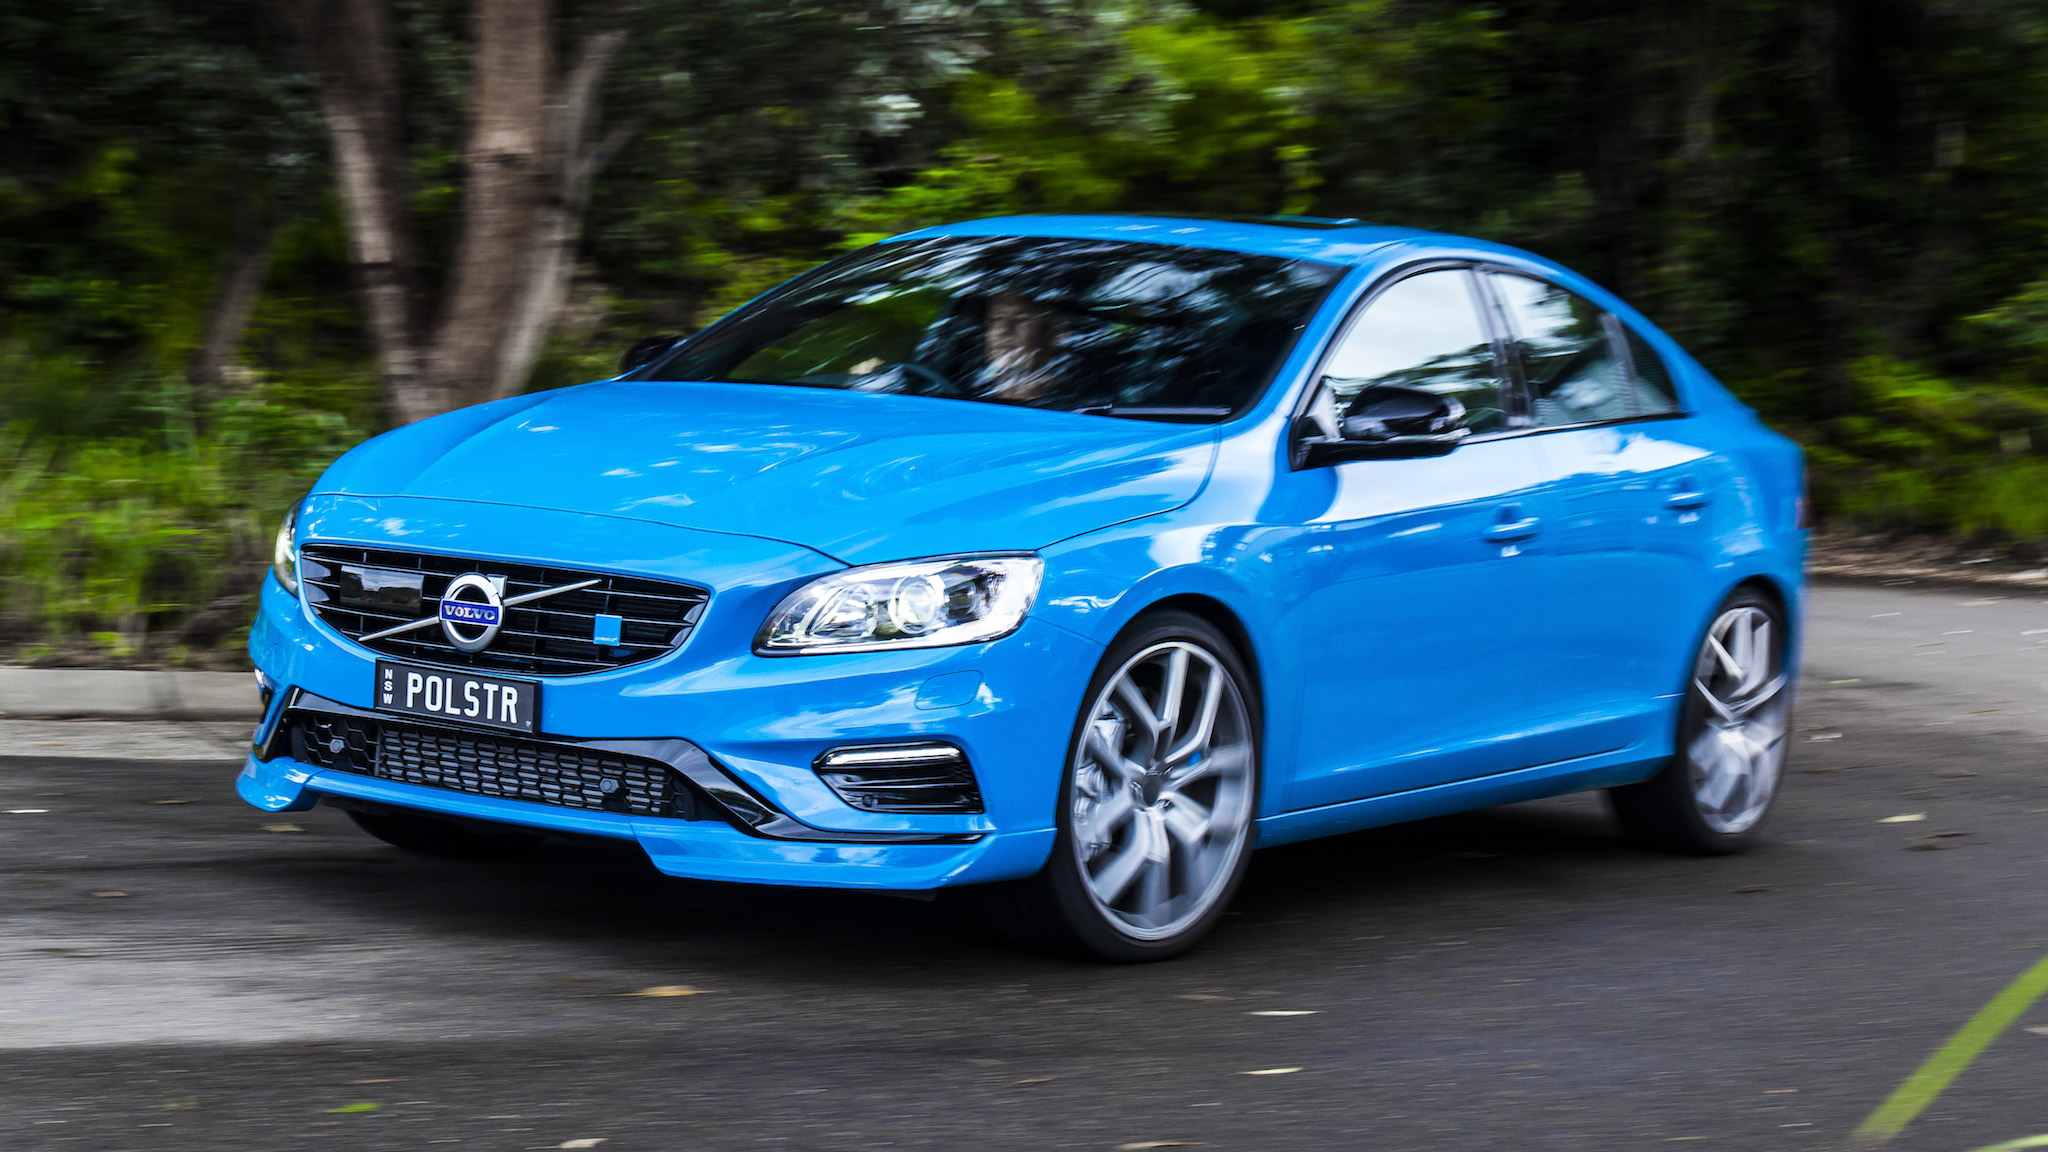 2016 volvo s60 v60 australia drops polestars and prices new t6 due soon photos 1 of 2. Black Bedroom Furniture Sets. Home Design Ideas